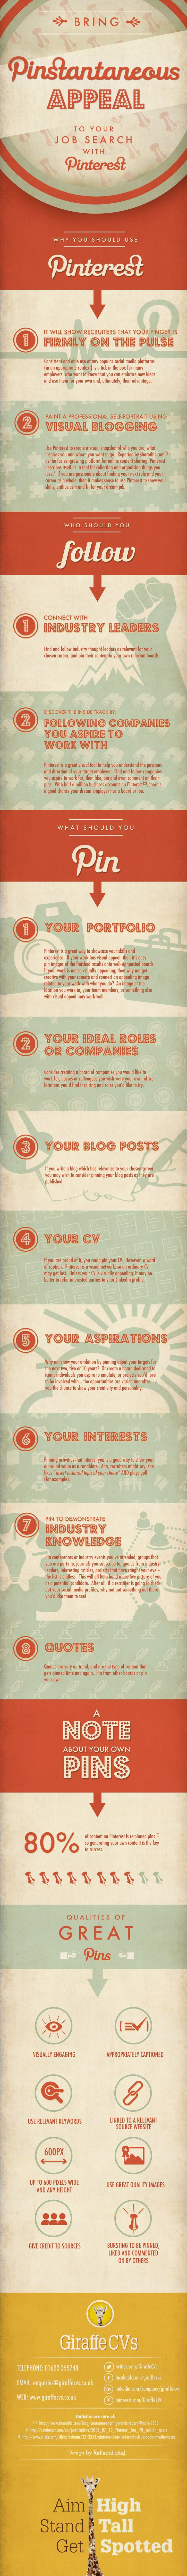 pinterest infographic bring pinstantaneous appeal to your job search with pinterest by cv - Asop Lebenslauf